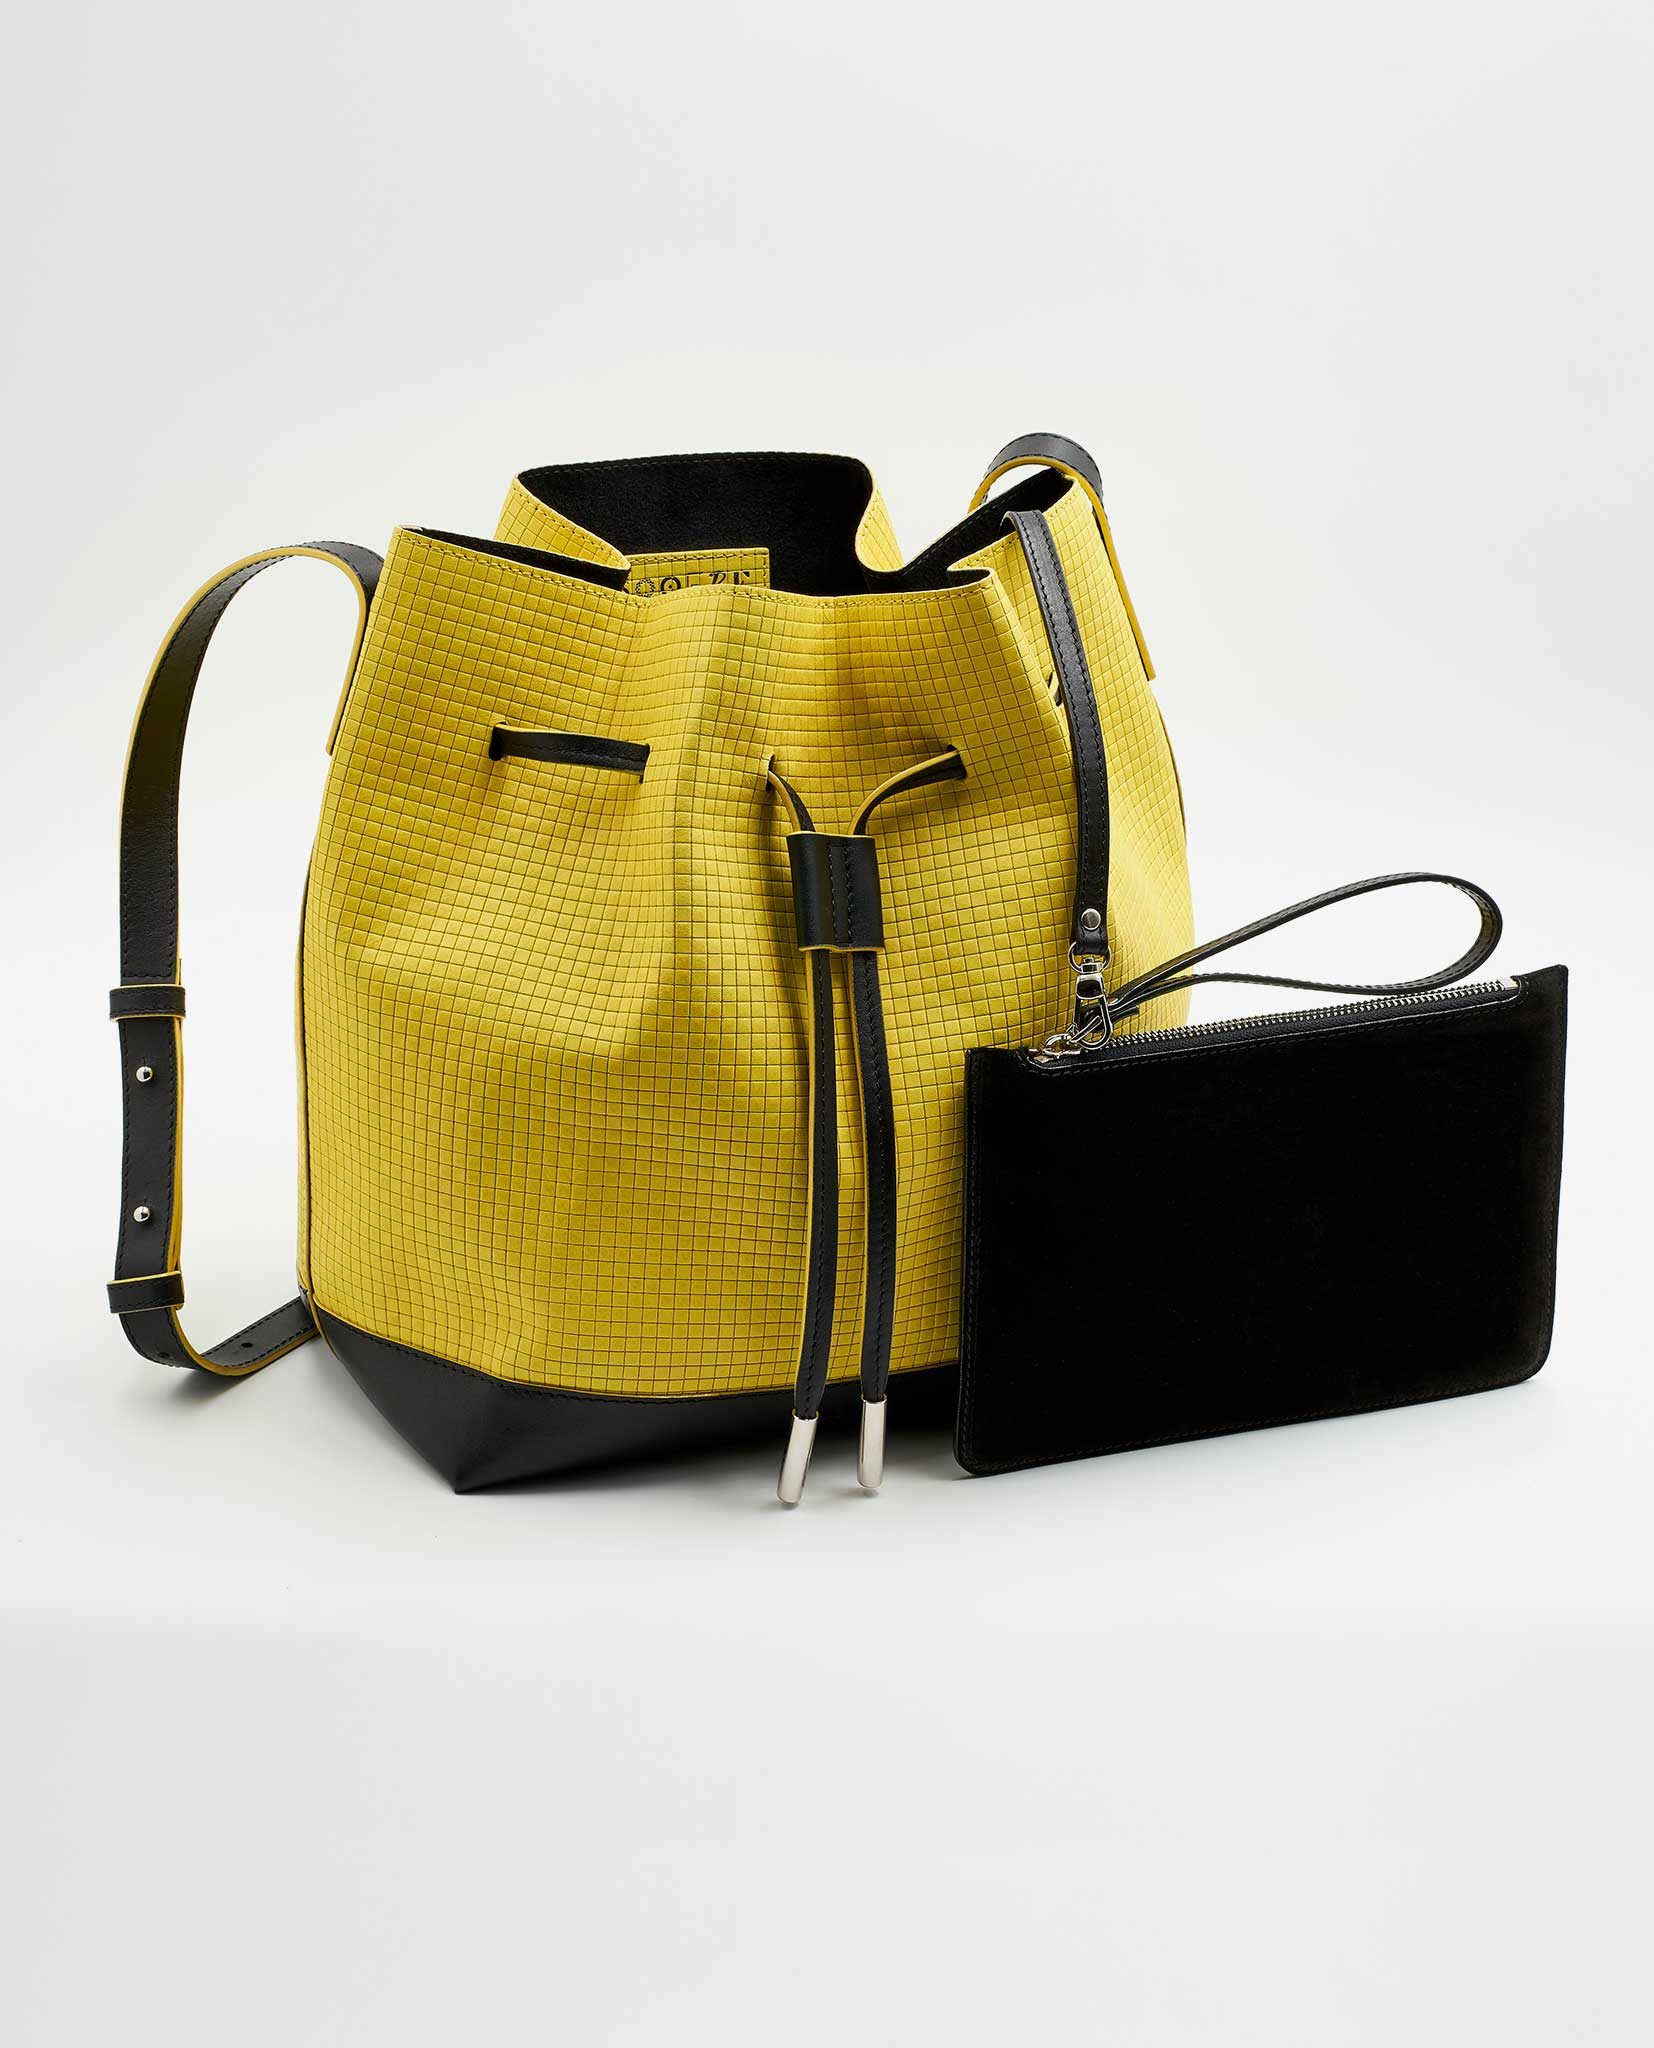 SOOFRE Berlin unique Bucket Bag squared yellow black